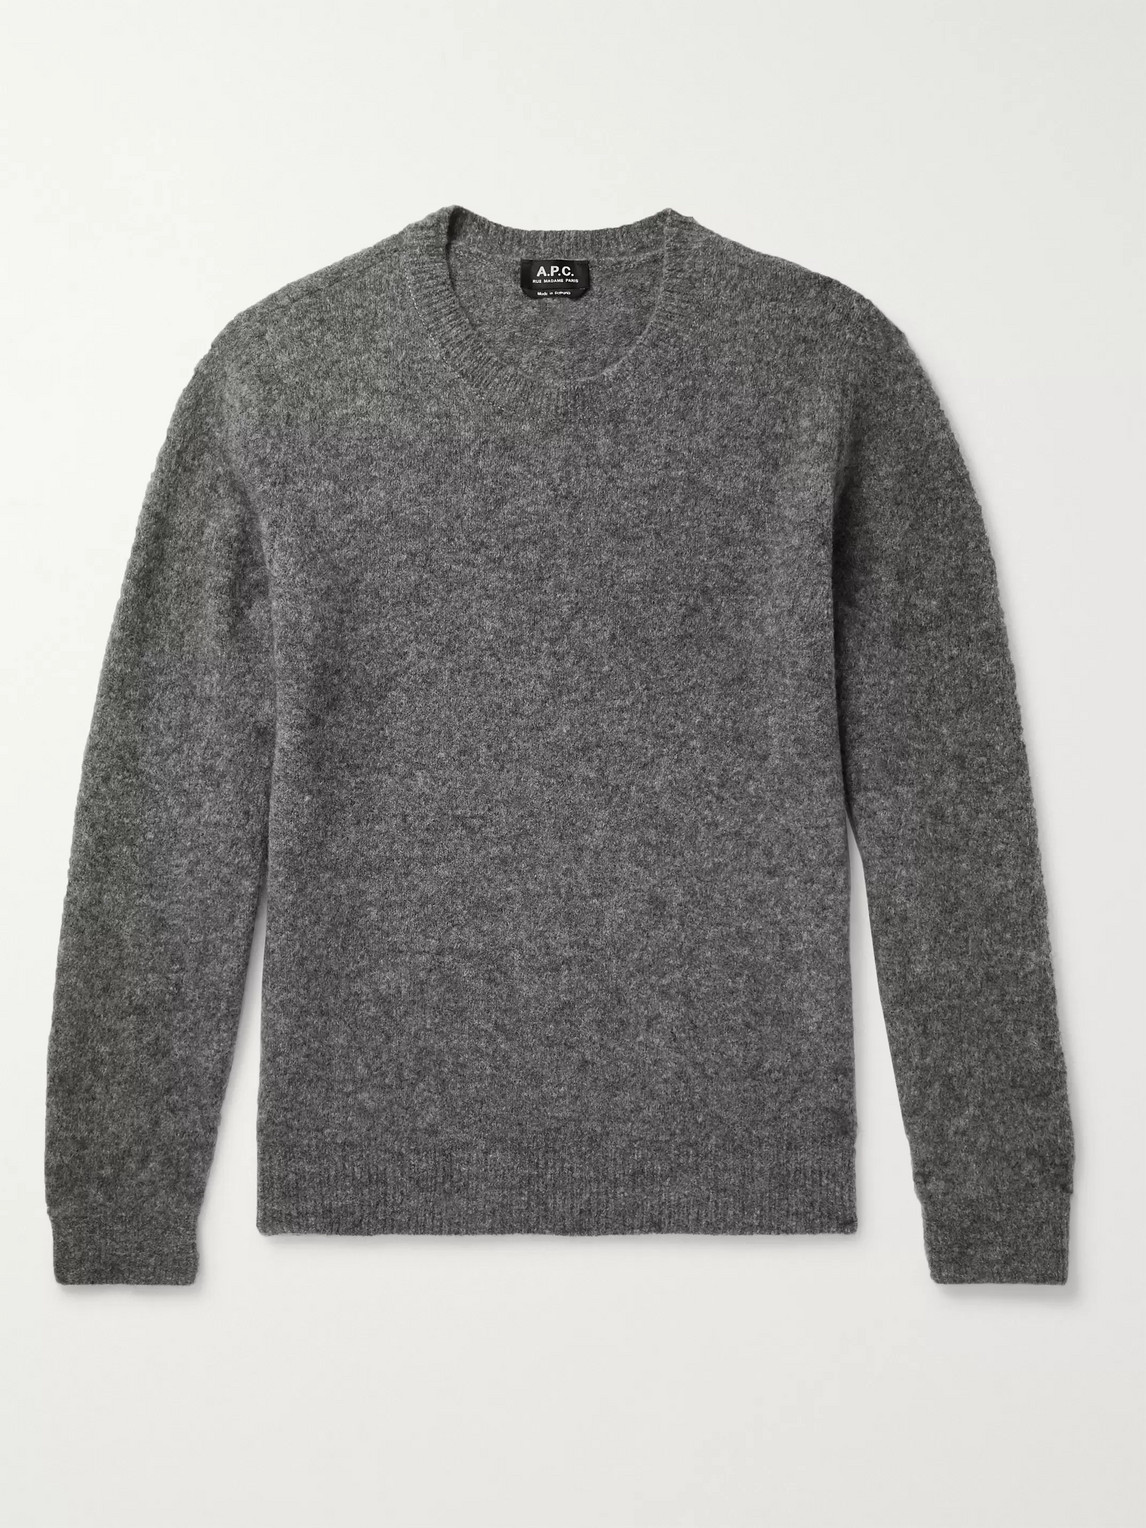 A.p.c. Wools DIEGO MÉLANGE WOOL-BLEND SWEATER